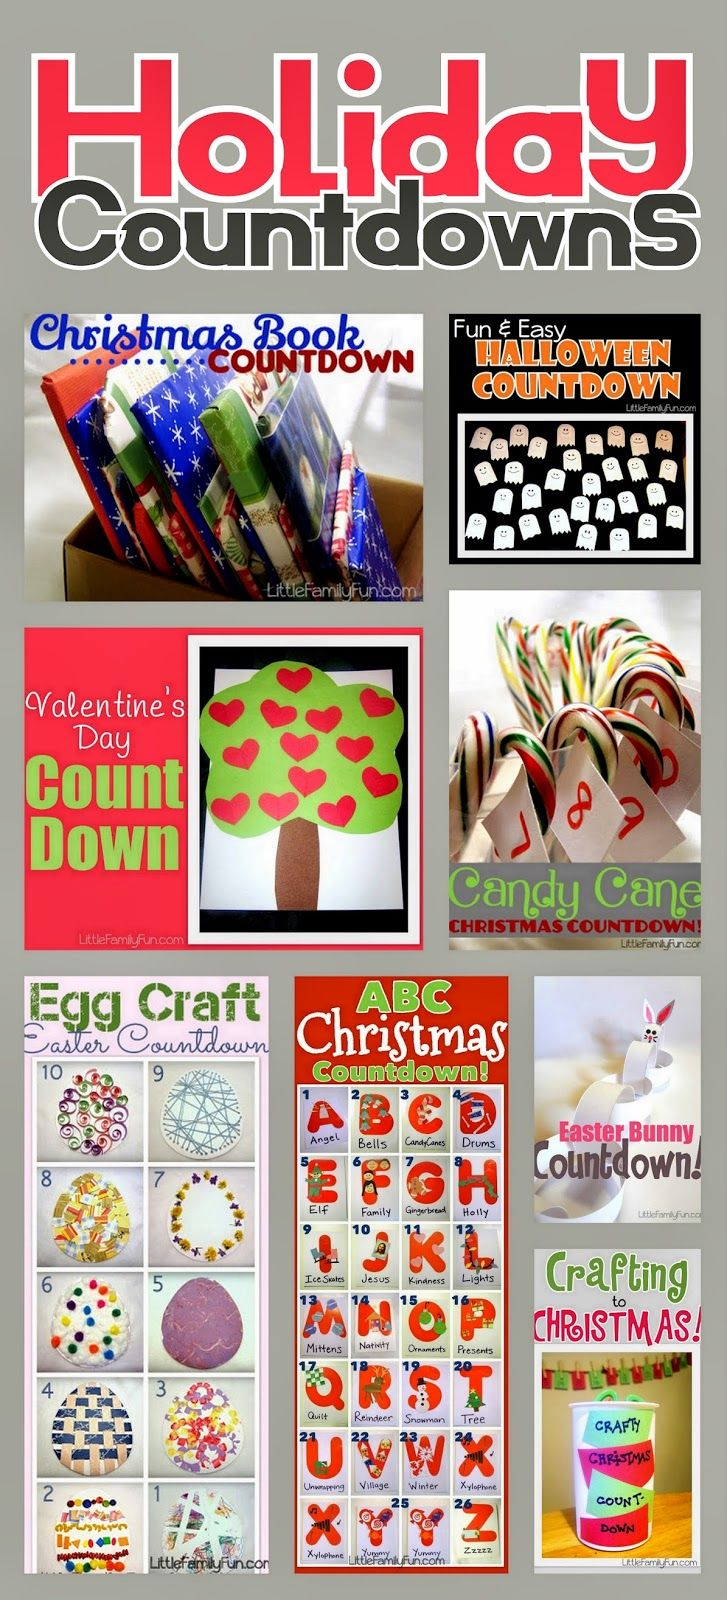 Holiday Countdown ideas. Fun ways to get ready for